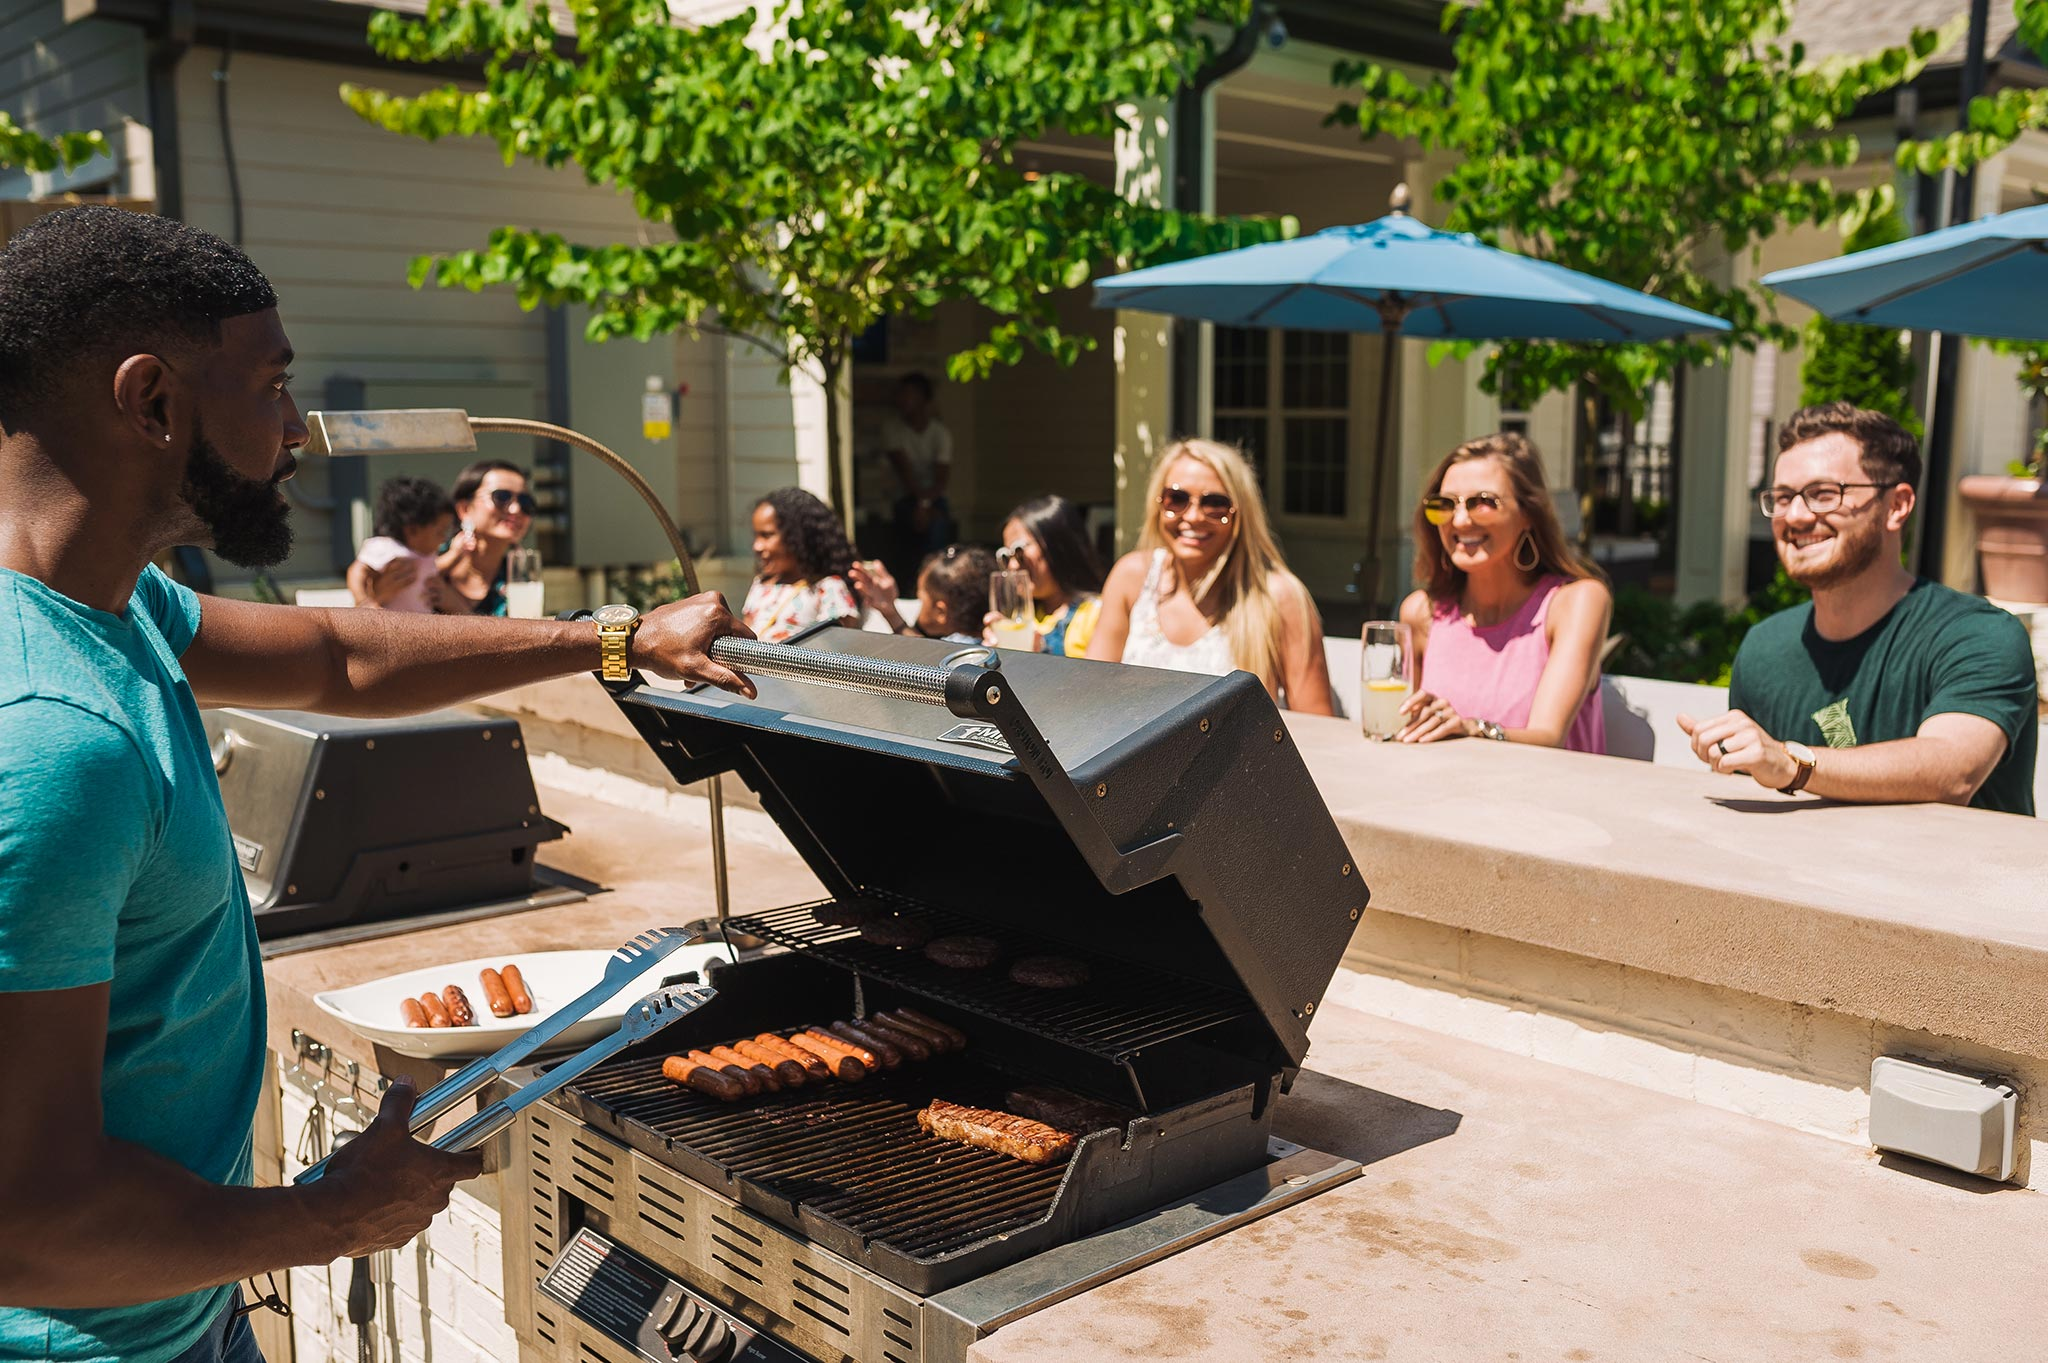 image of people enjoying a barbecue with outside amenities